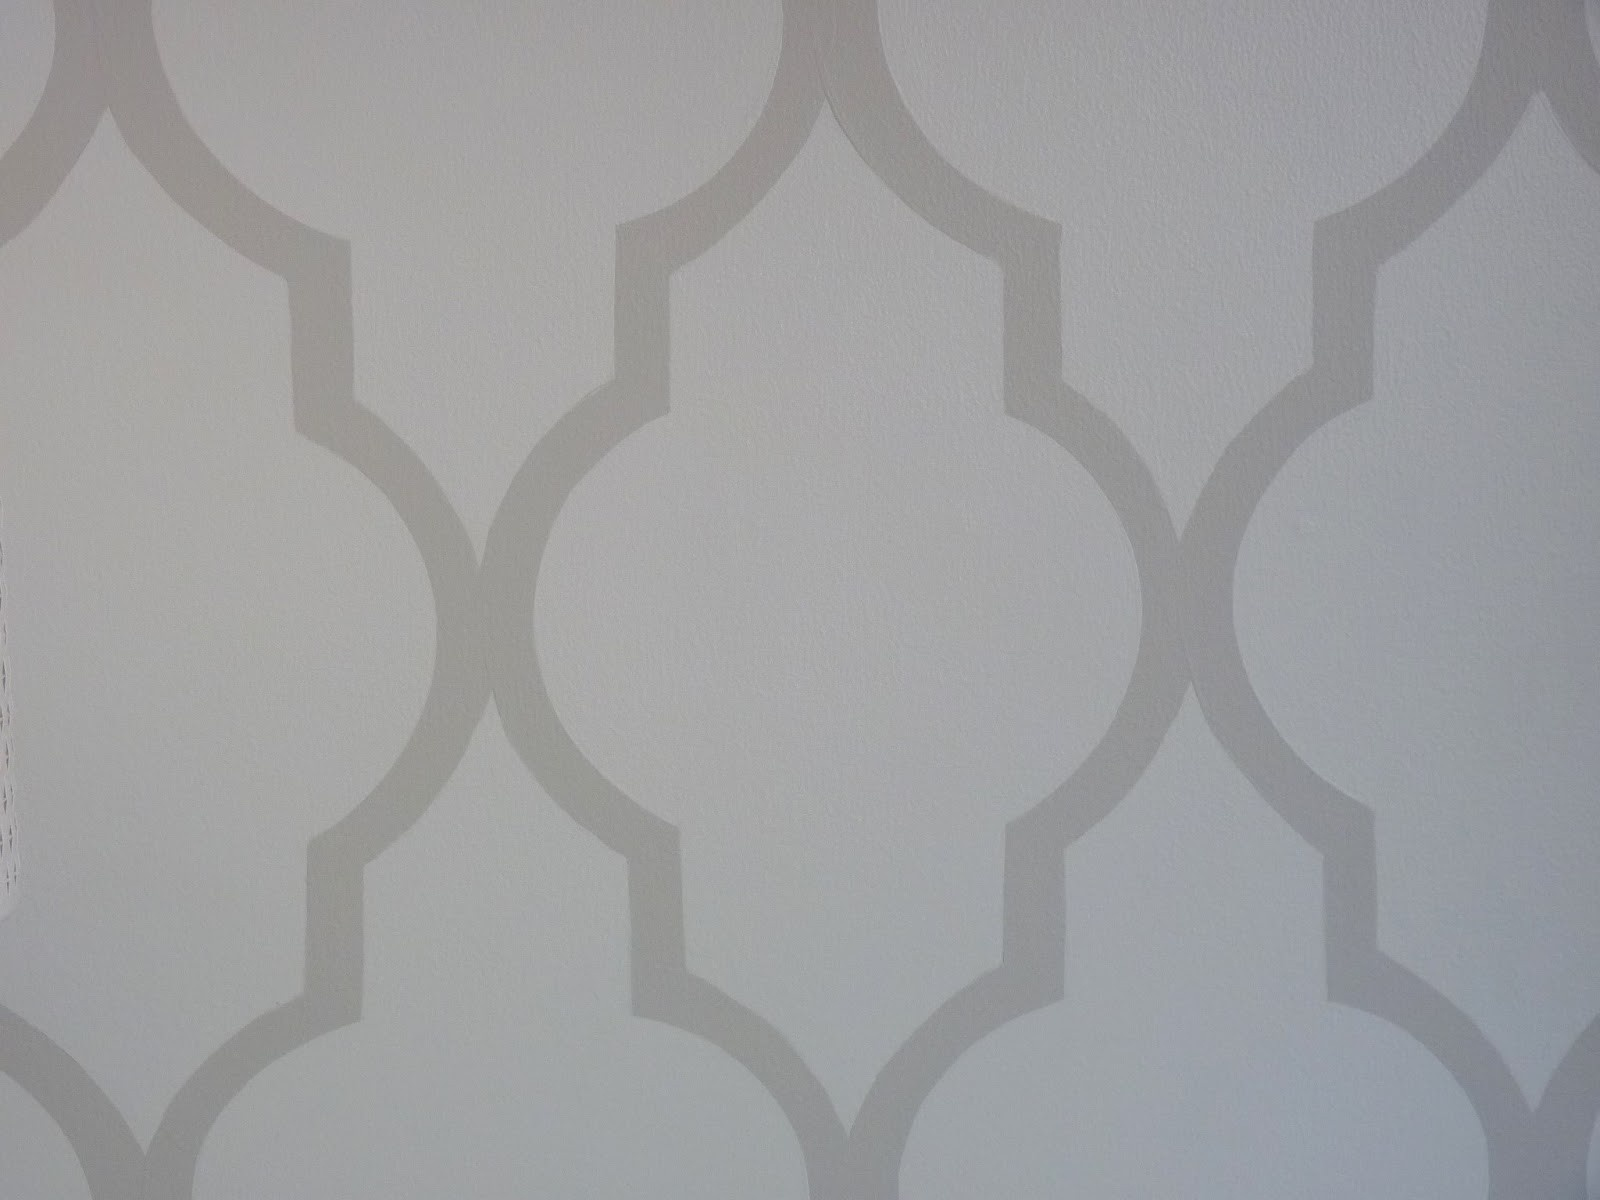 Lovely Free Printable Moroccan Wall Stencils   Www.pantry-Magic - Free Printable Moroccan Wall Stencils